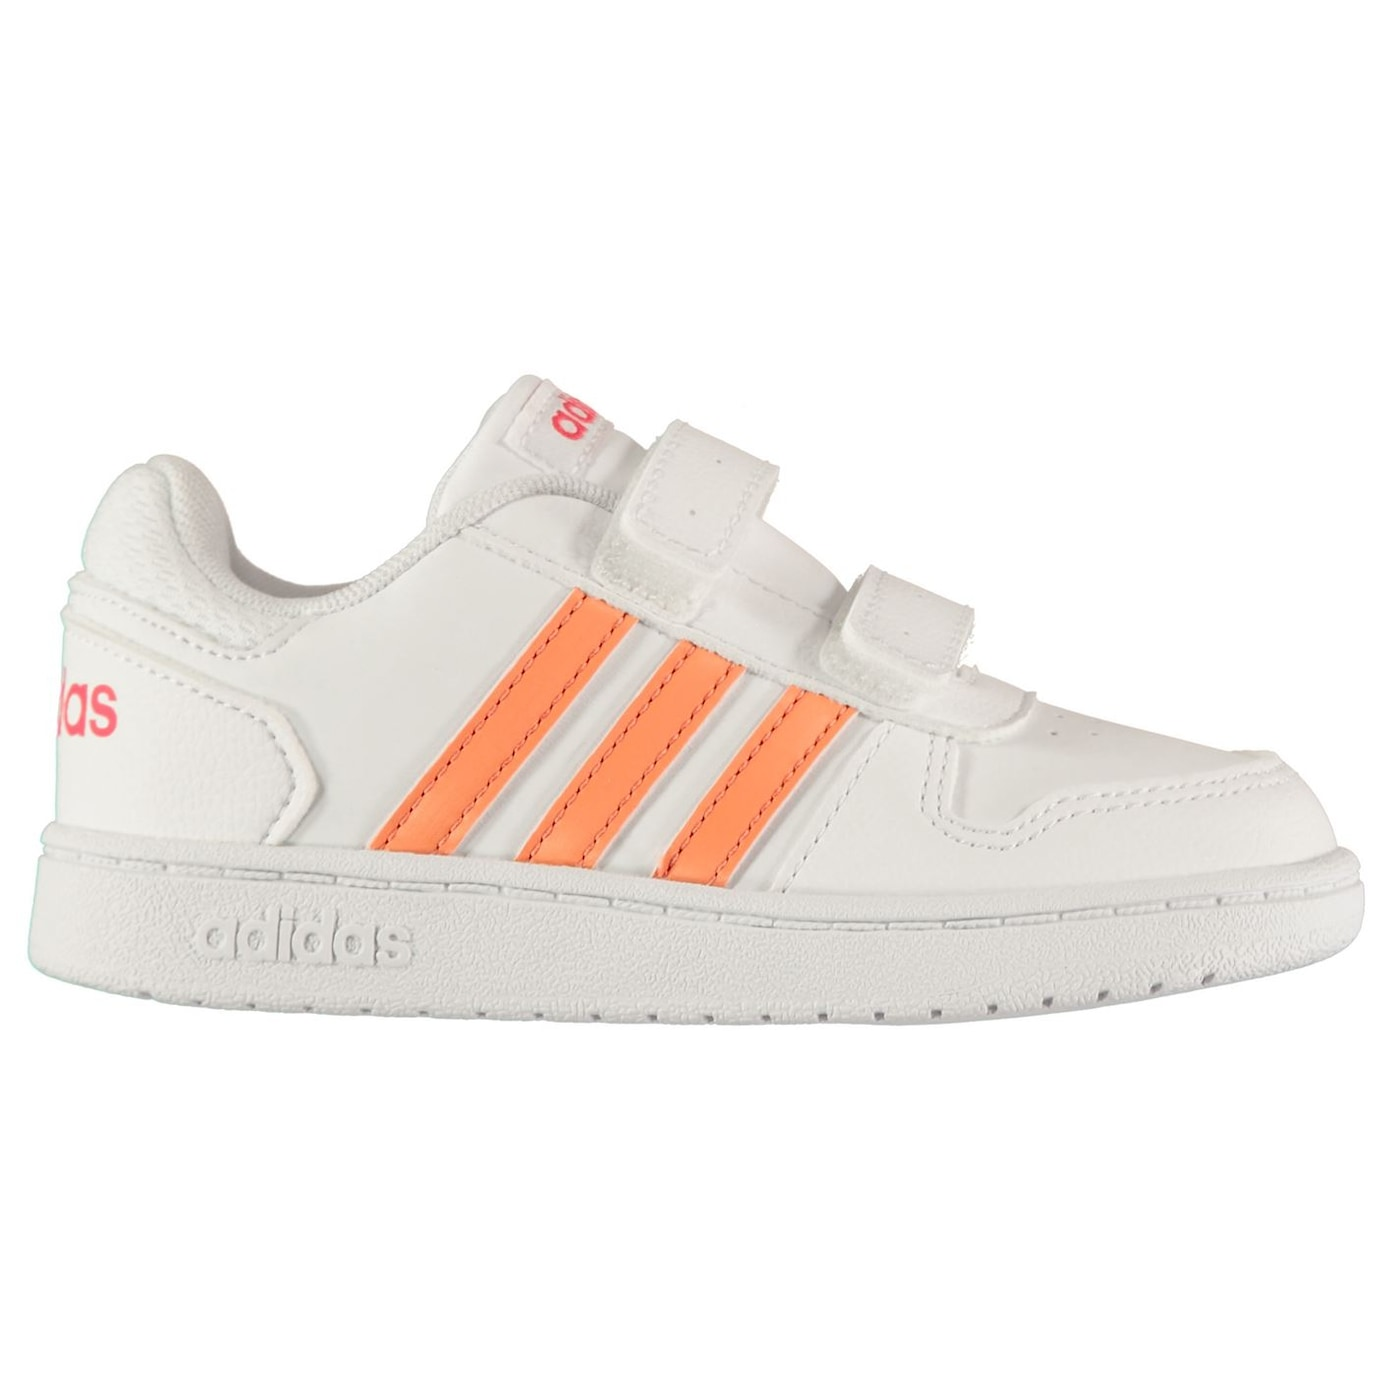 Adidas Hoops Syn Infant Girls Trainers